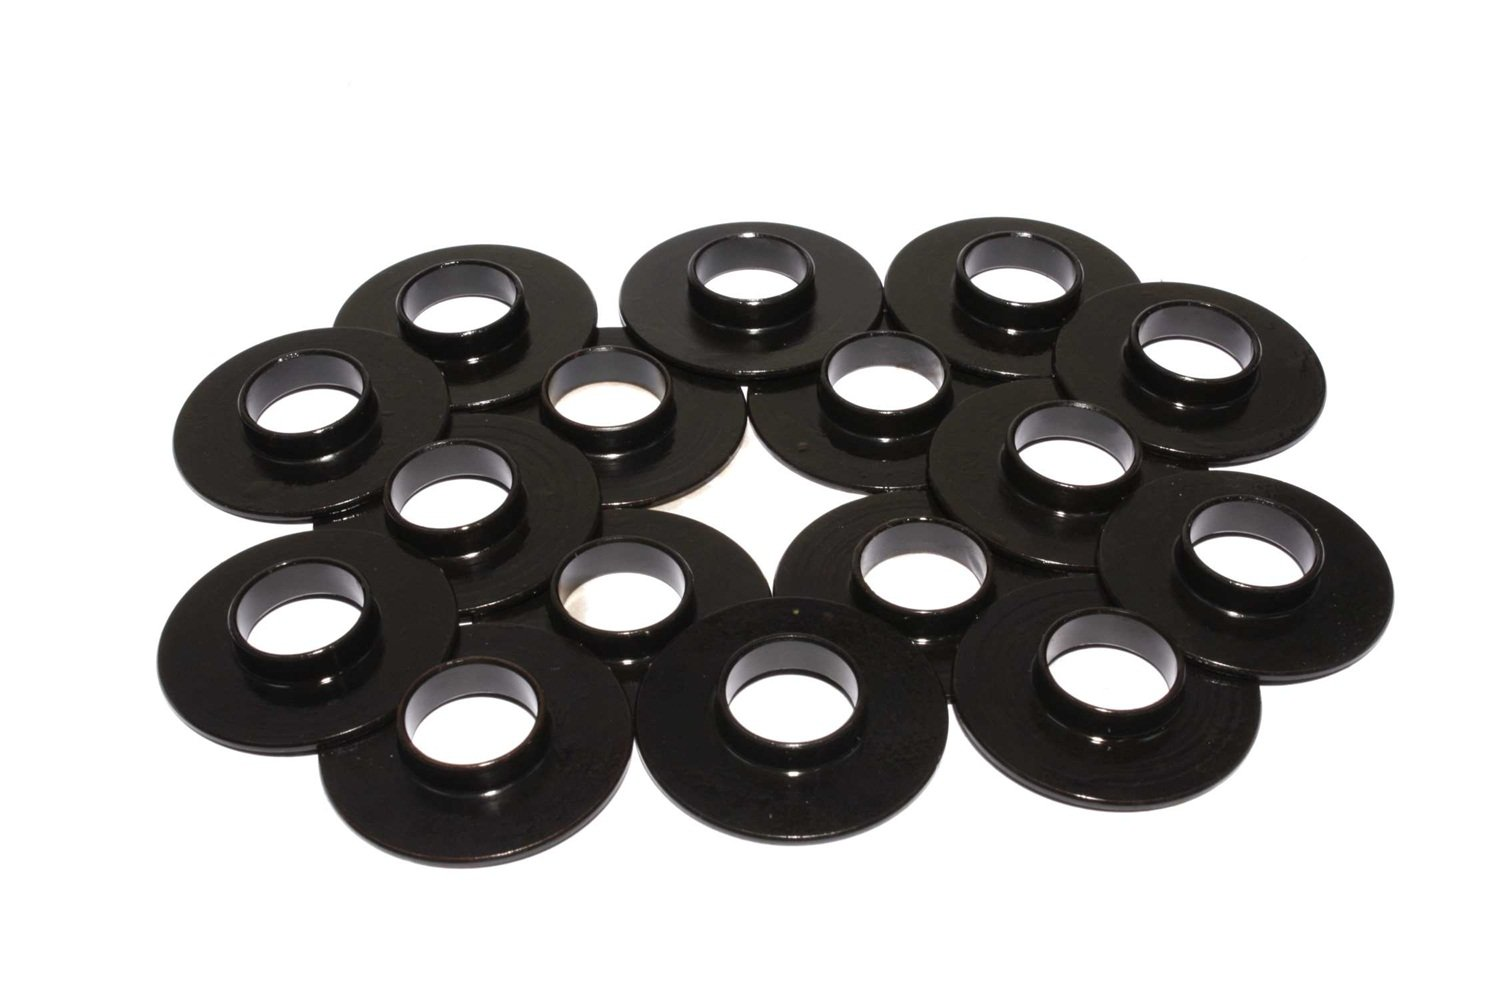 Competition Cams 478216 Competiton Cams Spring Seat Kit 16 Piece - All Models 4782-16